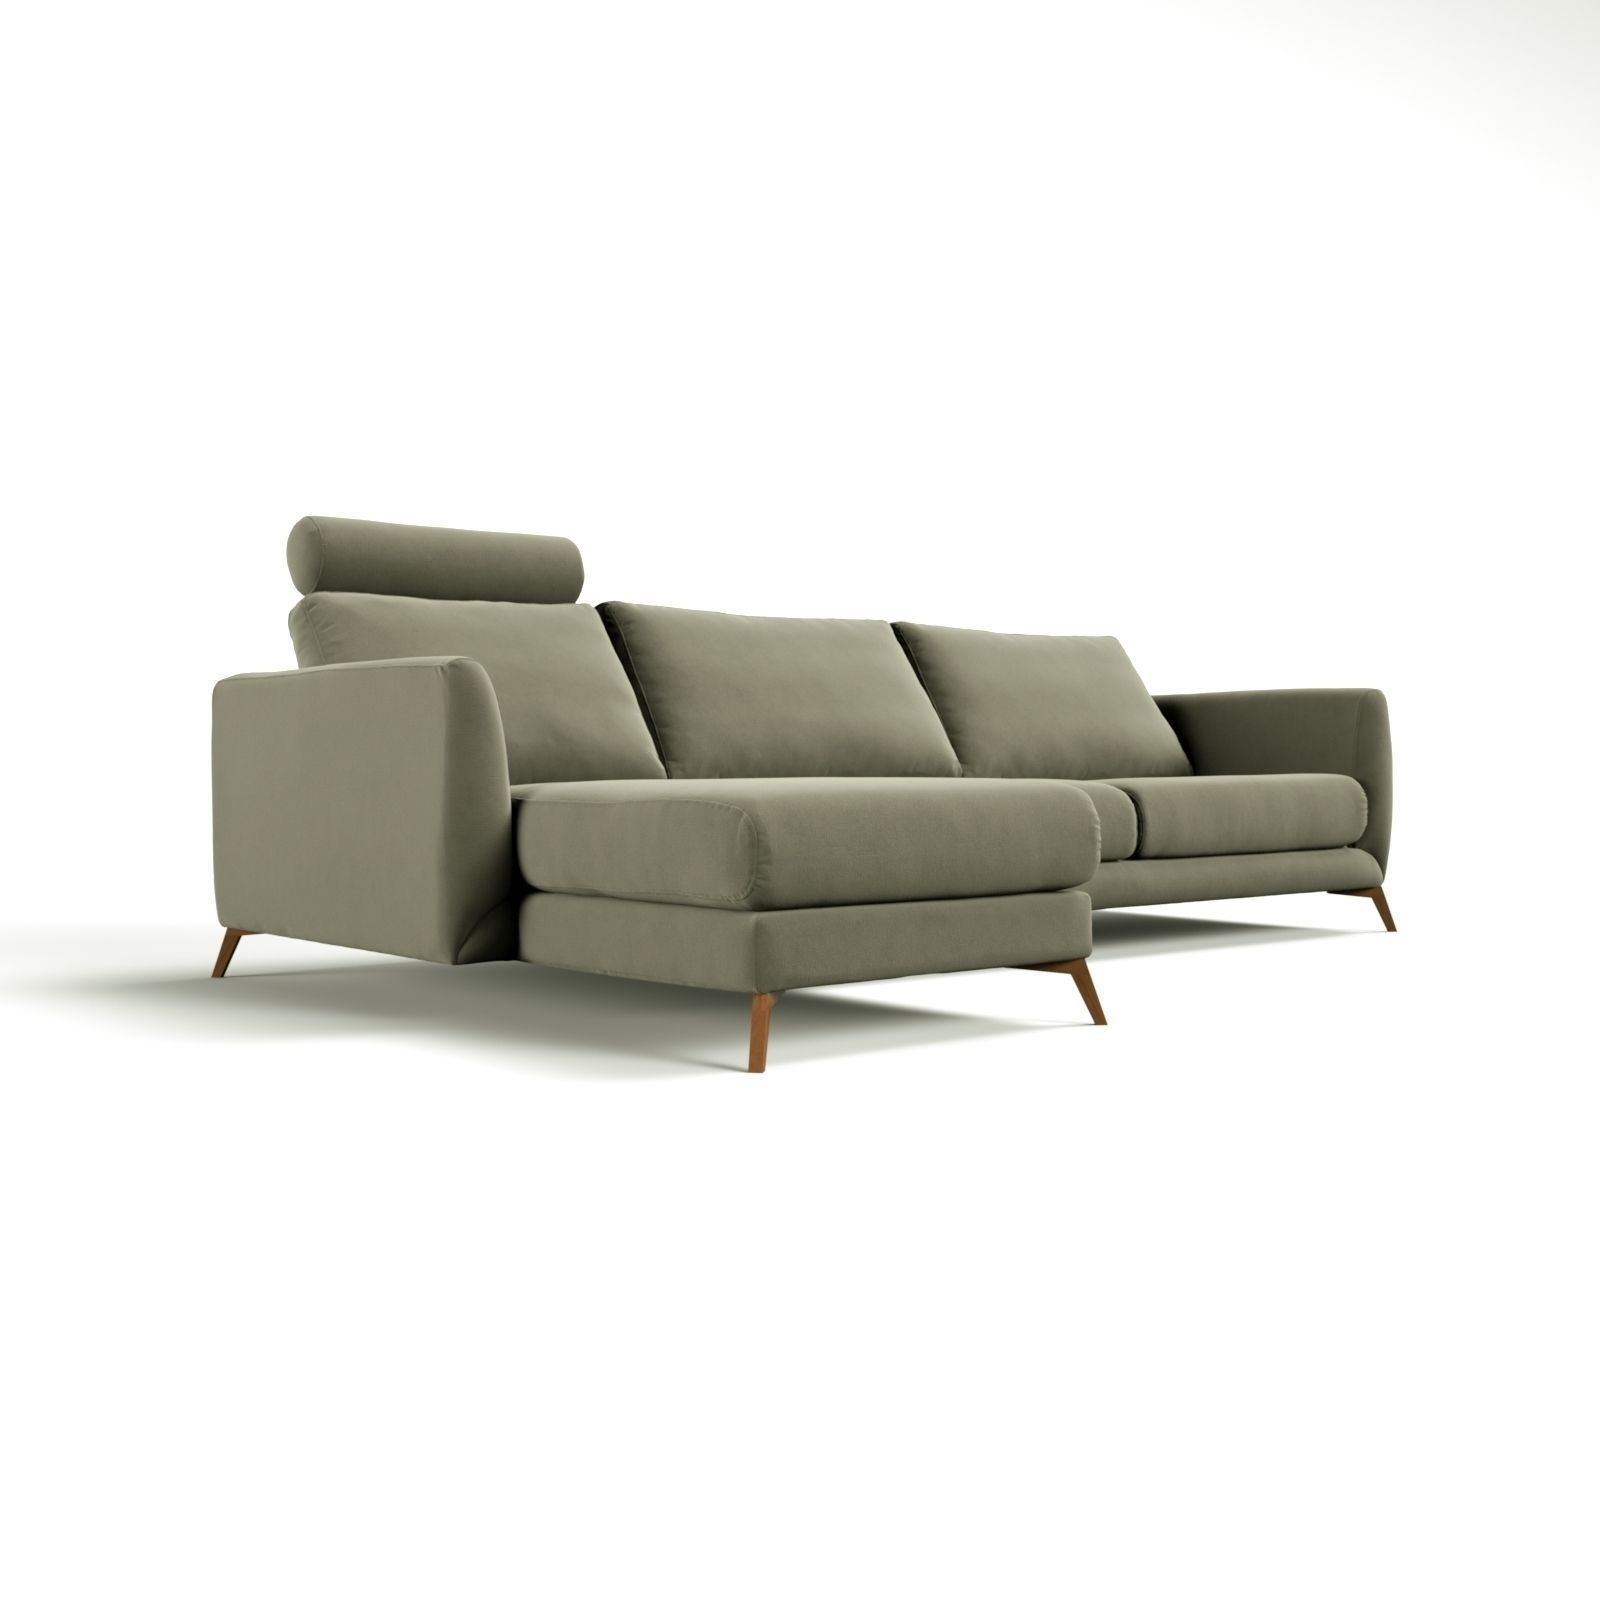 Boconcept fargo sofa 3d model max for Buro concept